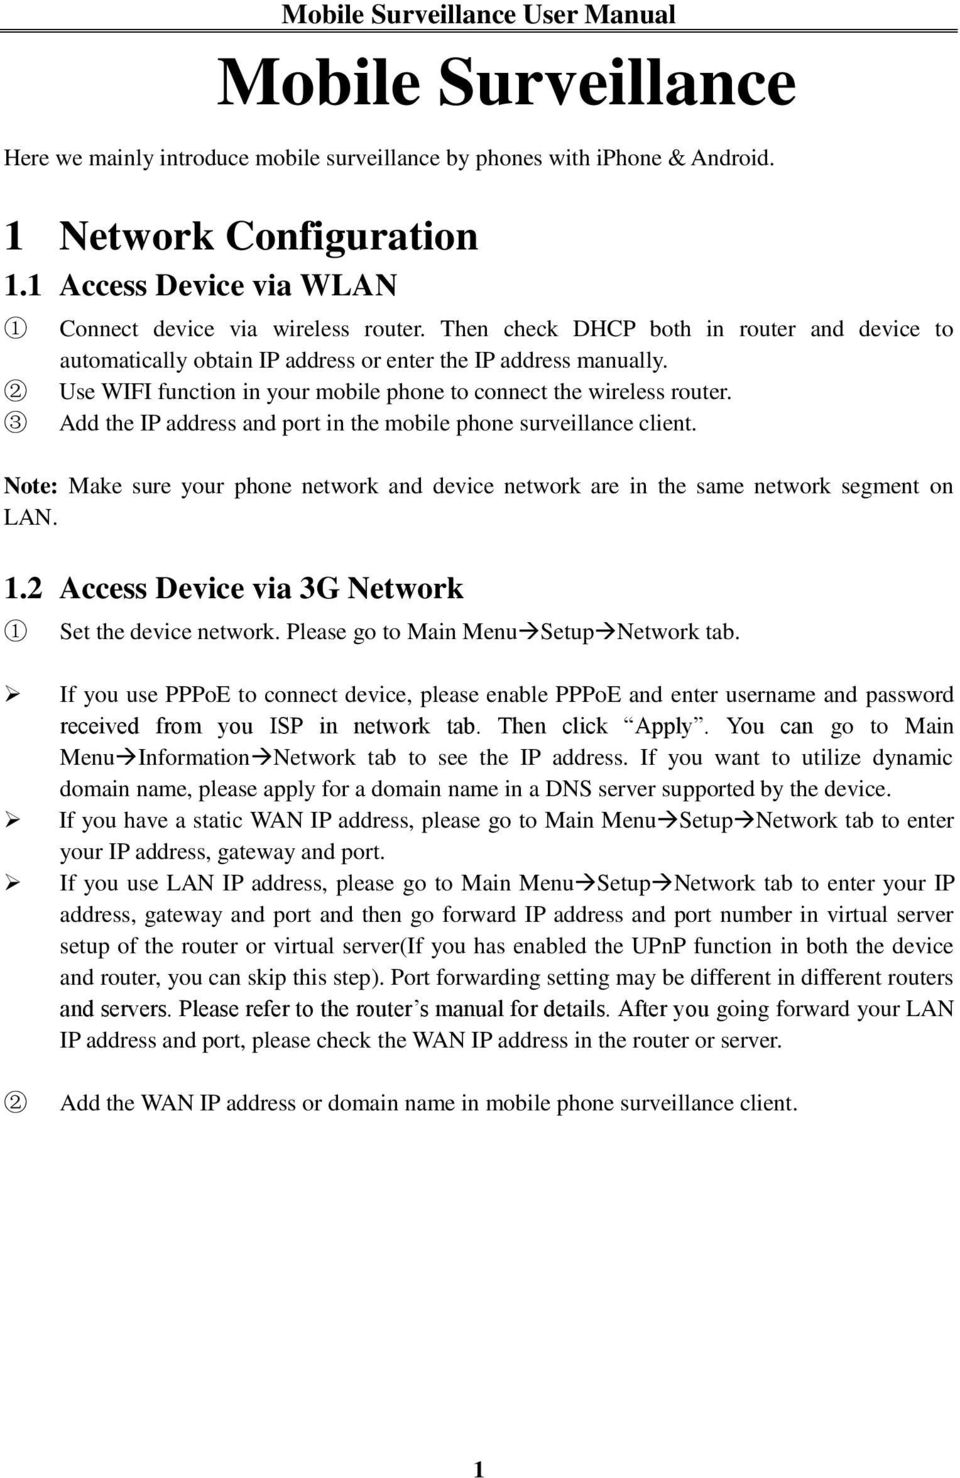 Add the IP address and port in the mobile phone surveillance client. Note: Make sure your phone network and device network are in the same network segment on LAN. 1.